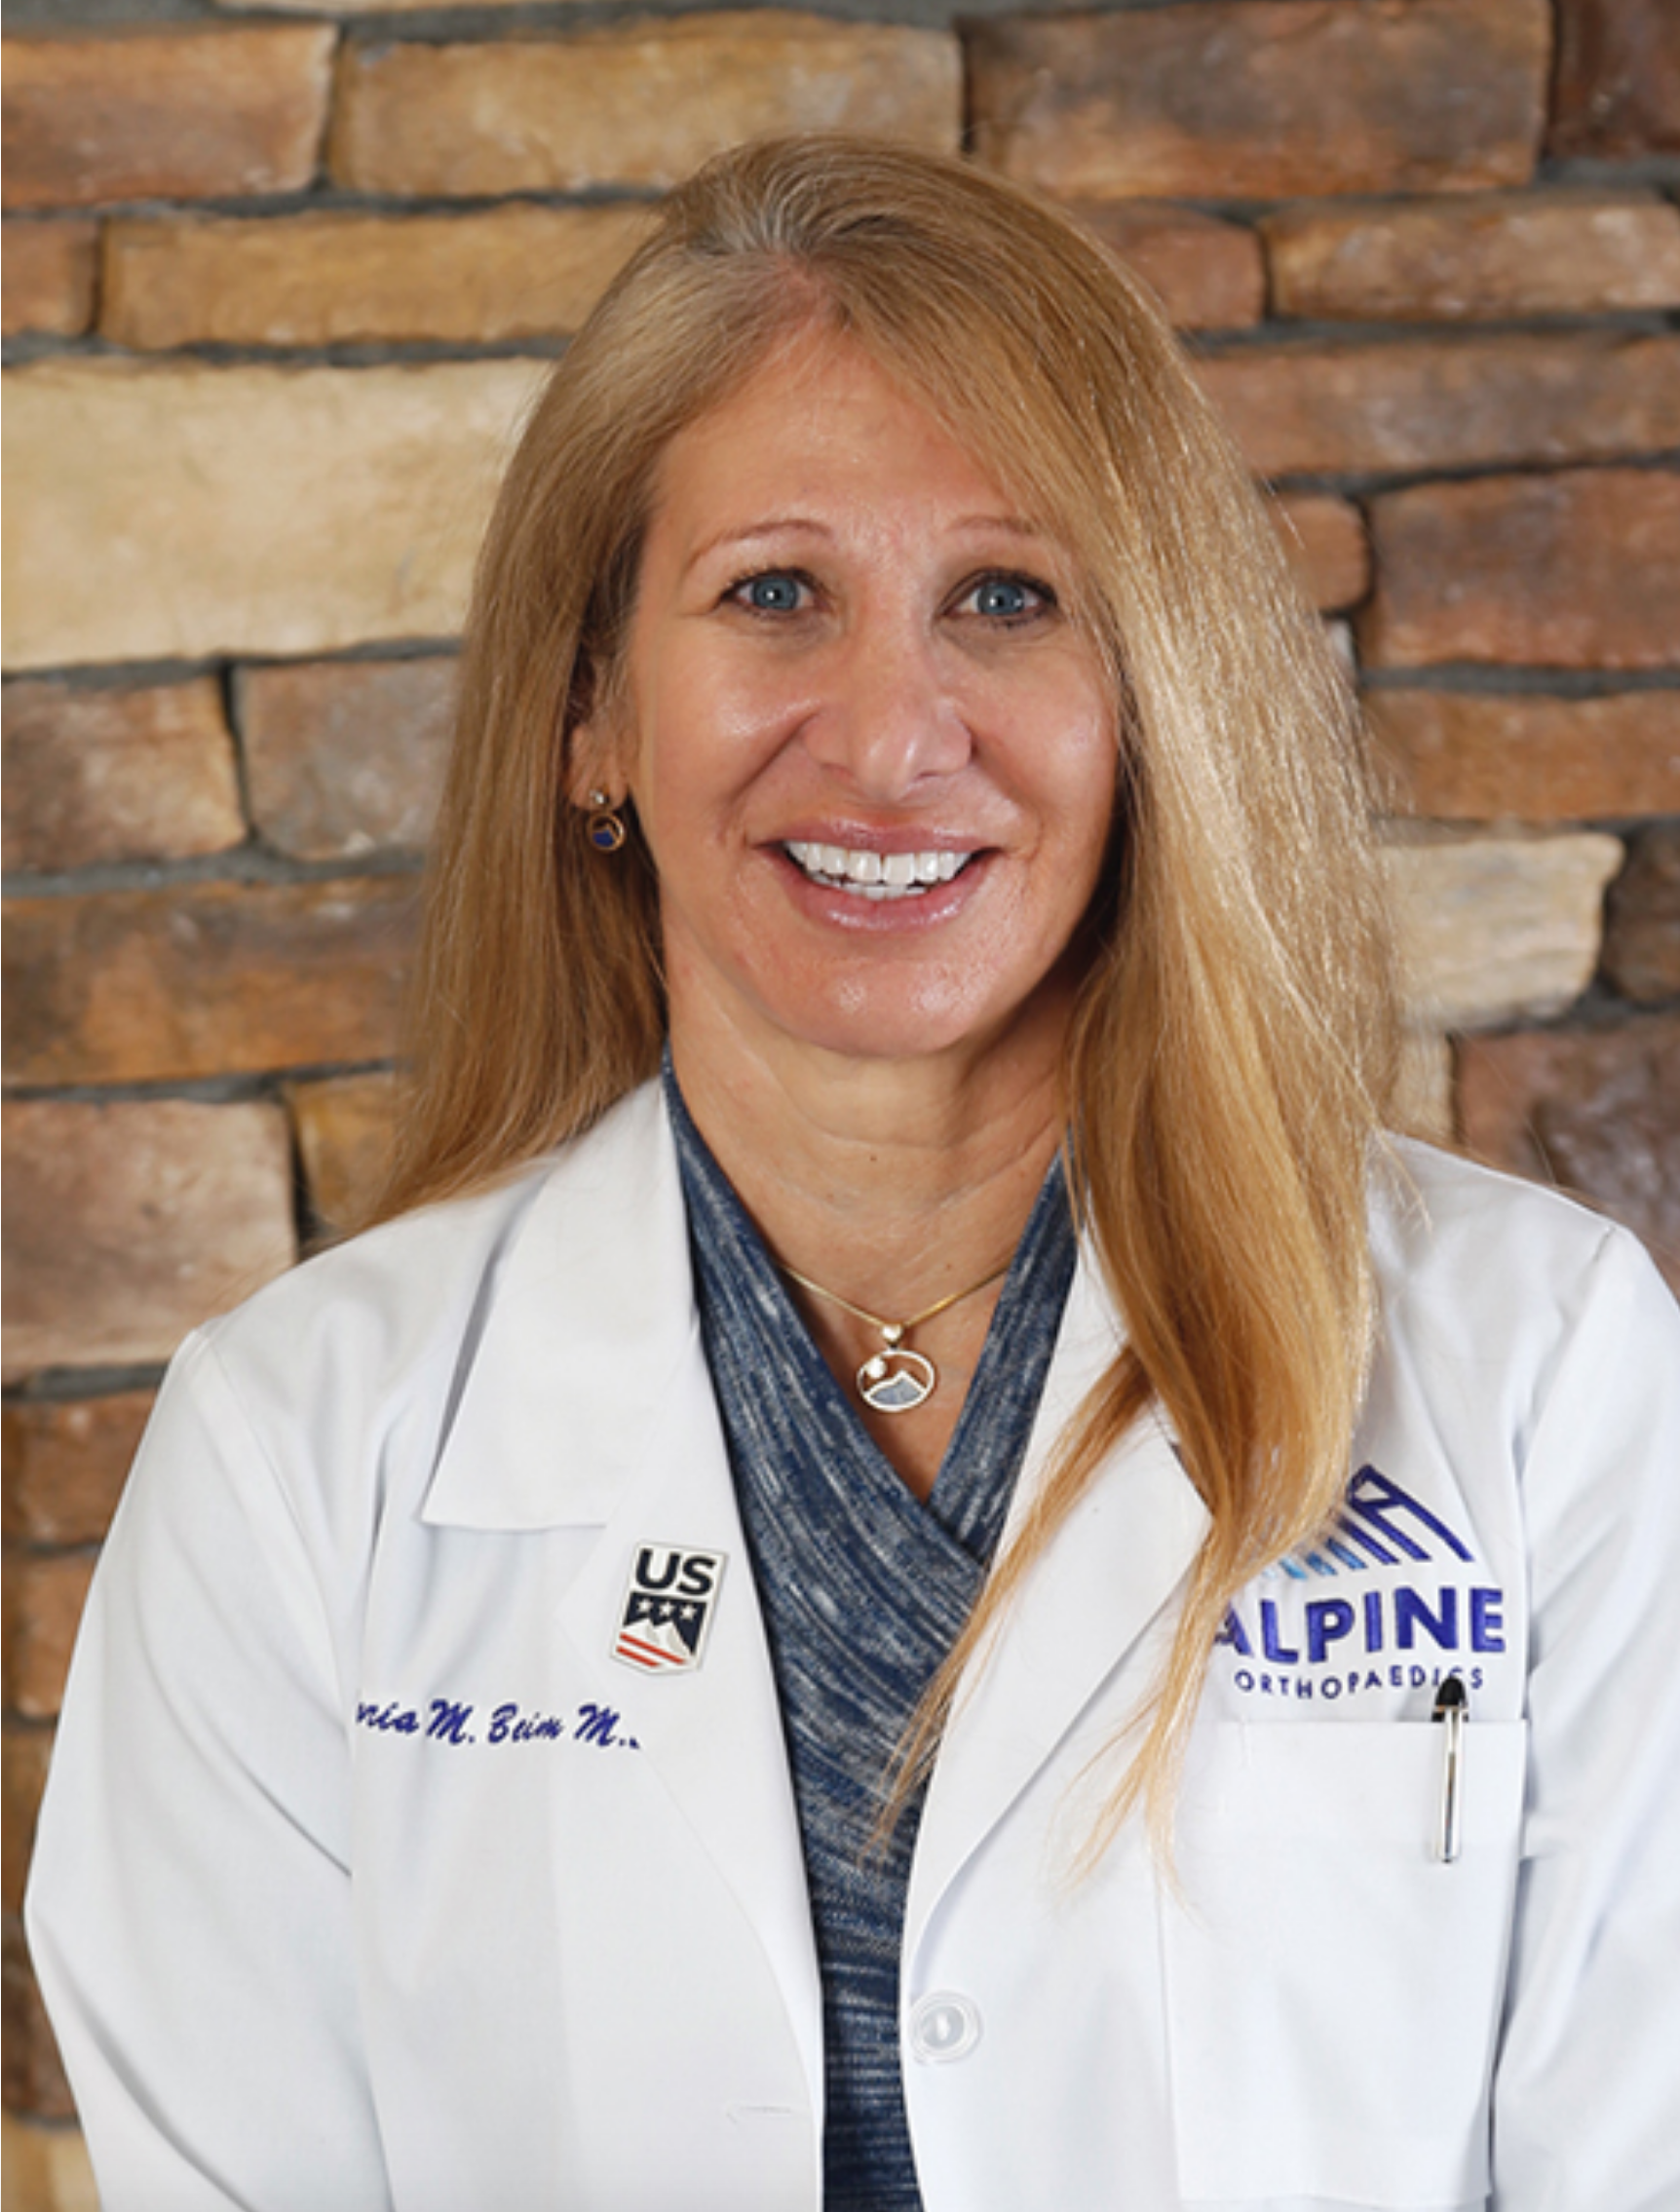 Dr. Gloria Beim, MD Alpine Orthopedics